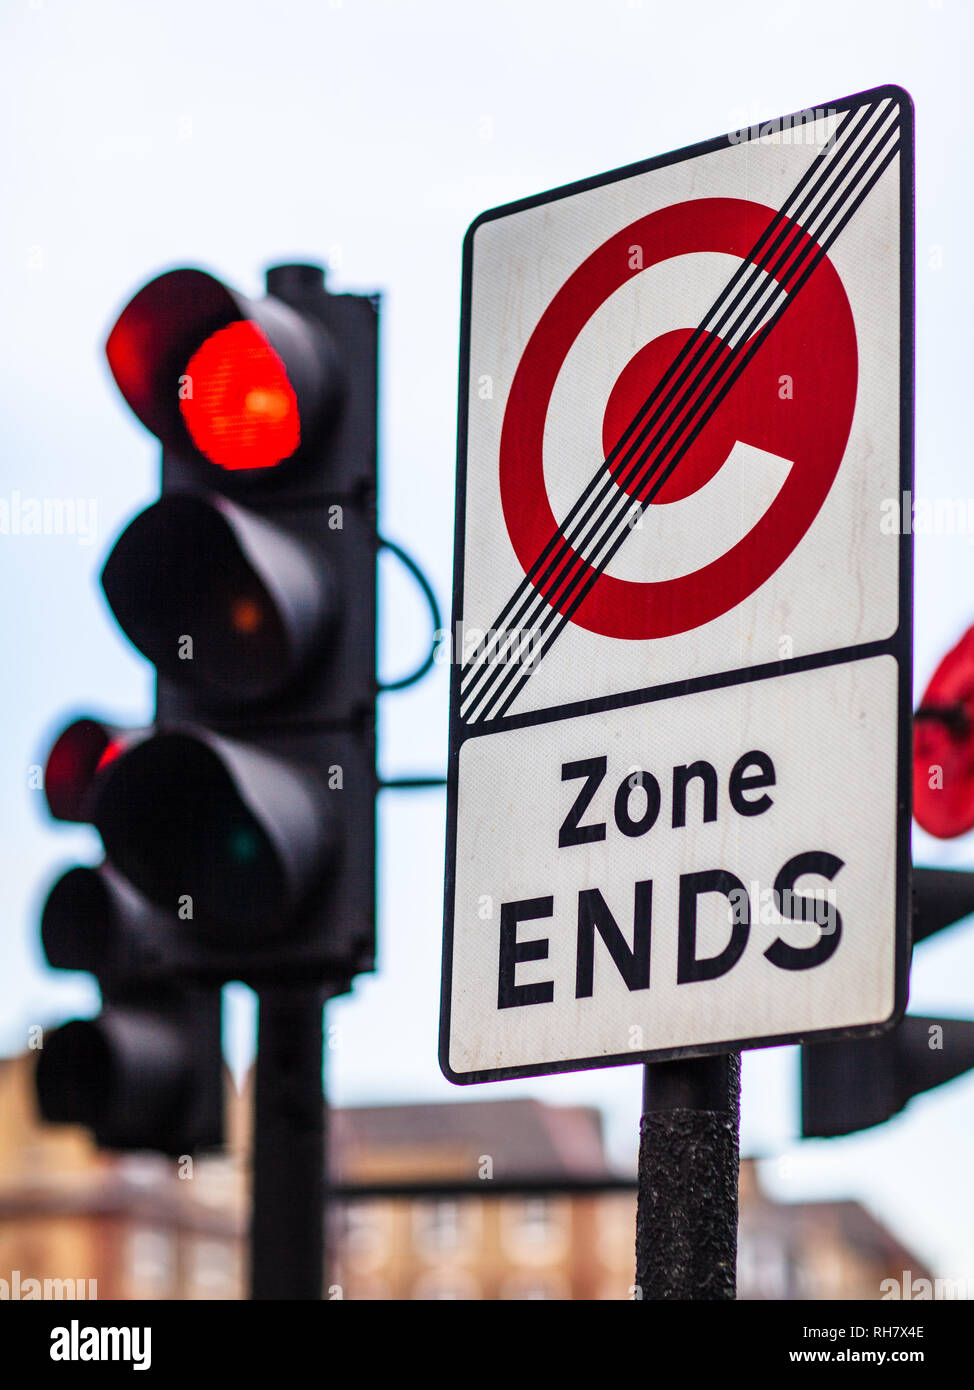 London Congestion Zone - sign marking the end of the London Congestion Charging Zone near Old Street Roundabout in Central London - Stock Image